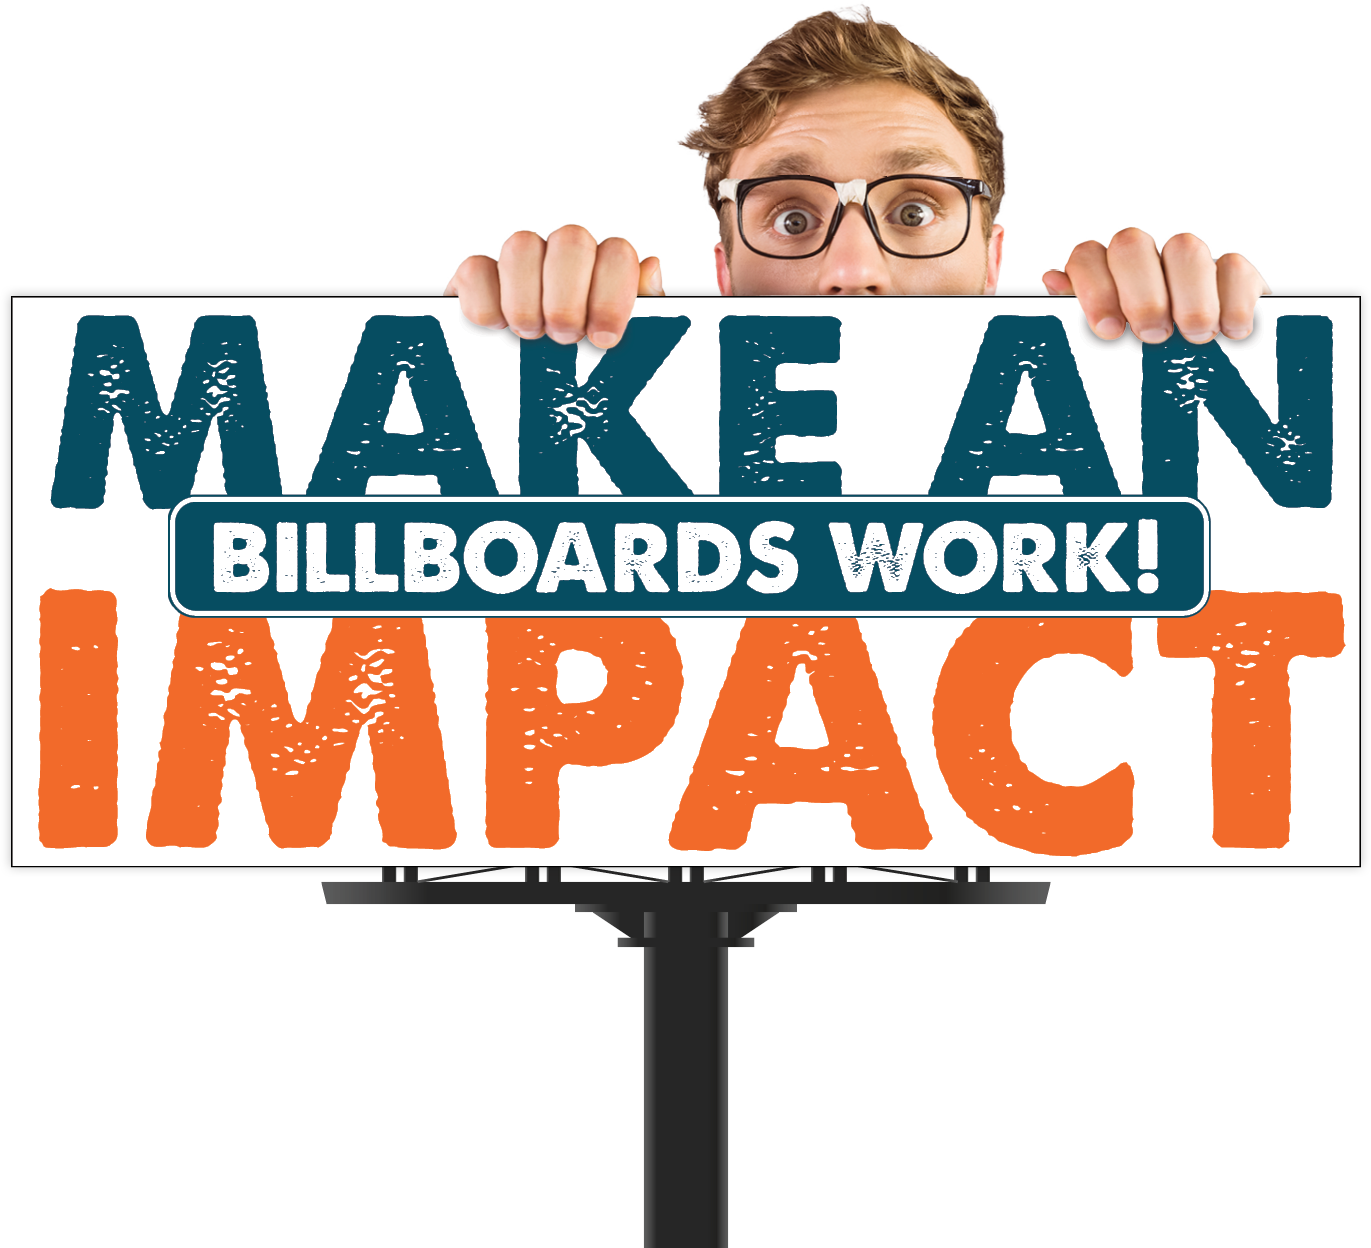 billboards work